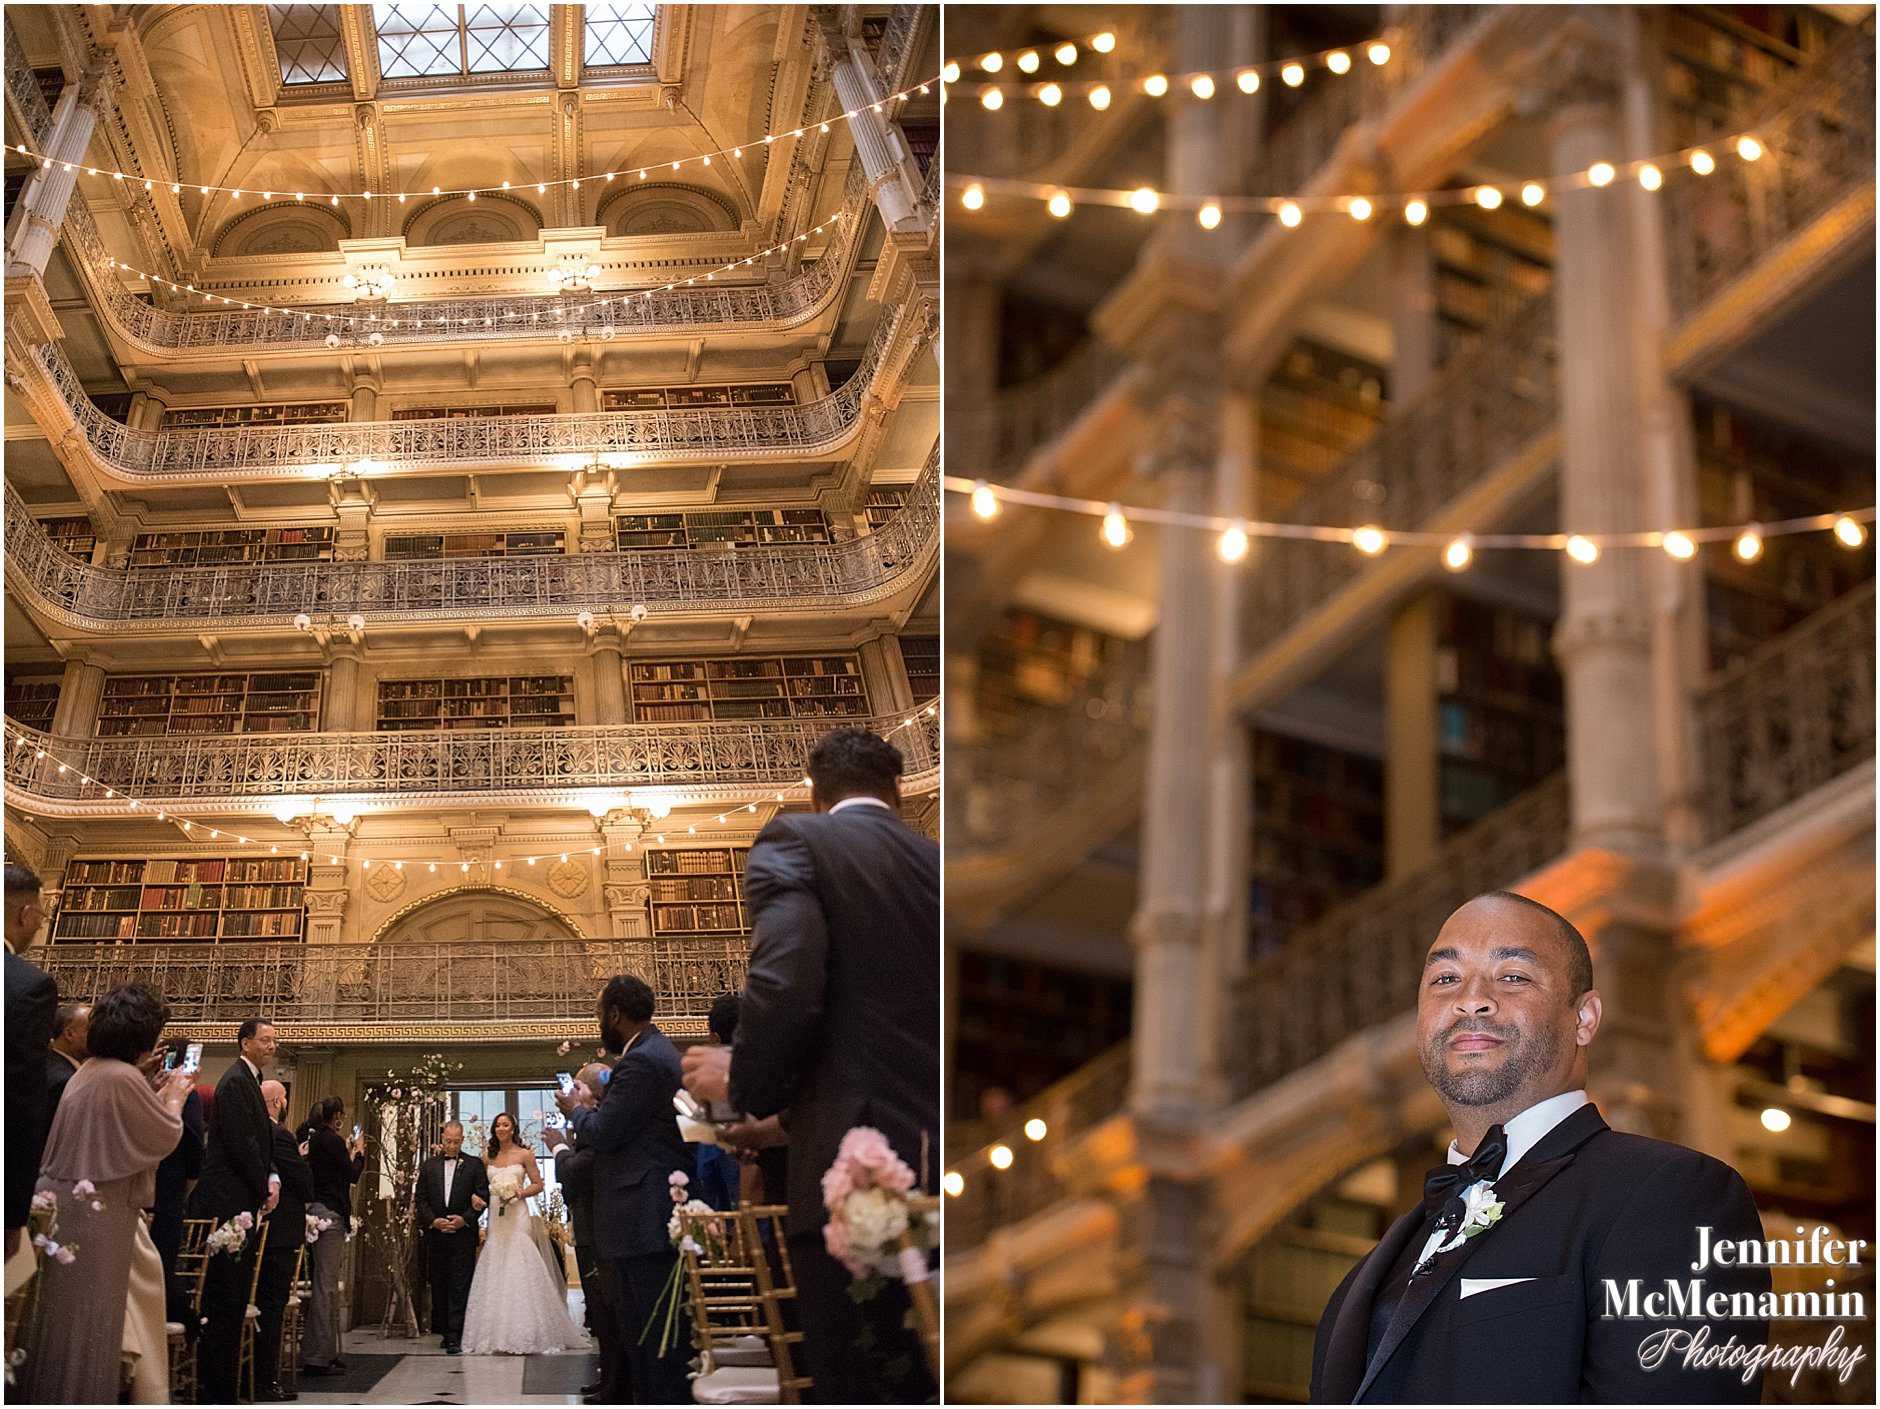 027-Peabody-Library-Wedding_WilsonPatterson_01451-0283_Jennifer-McMenamin-Photography